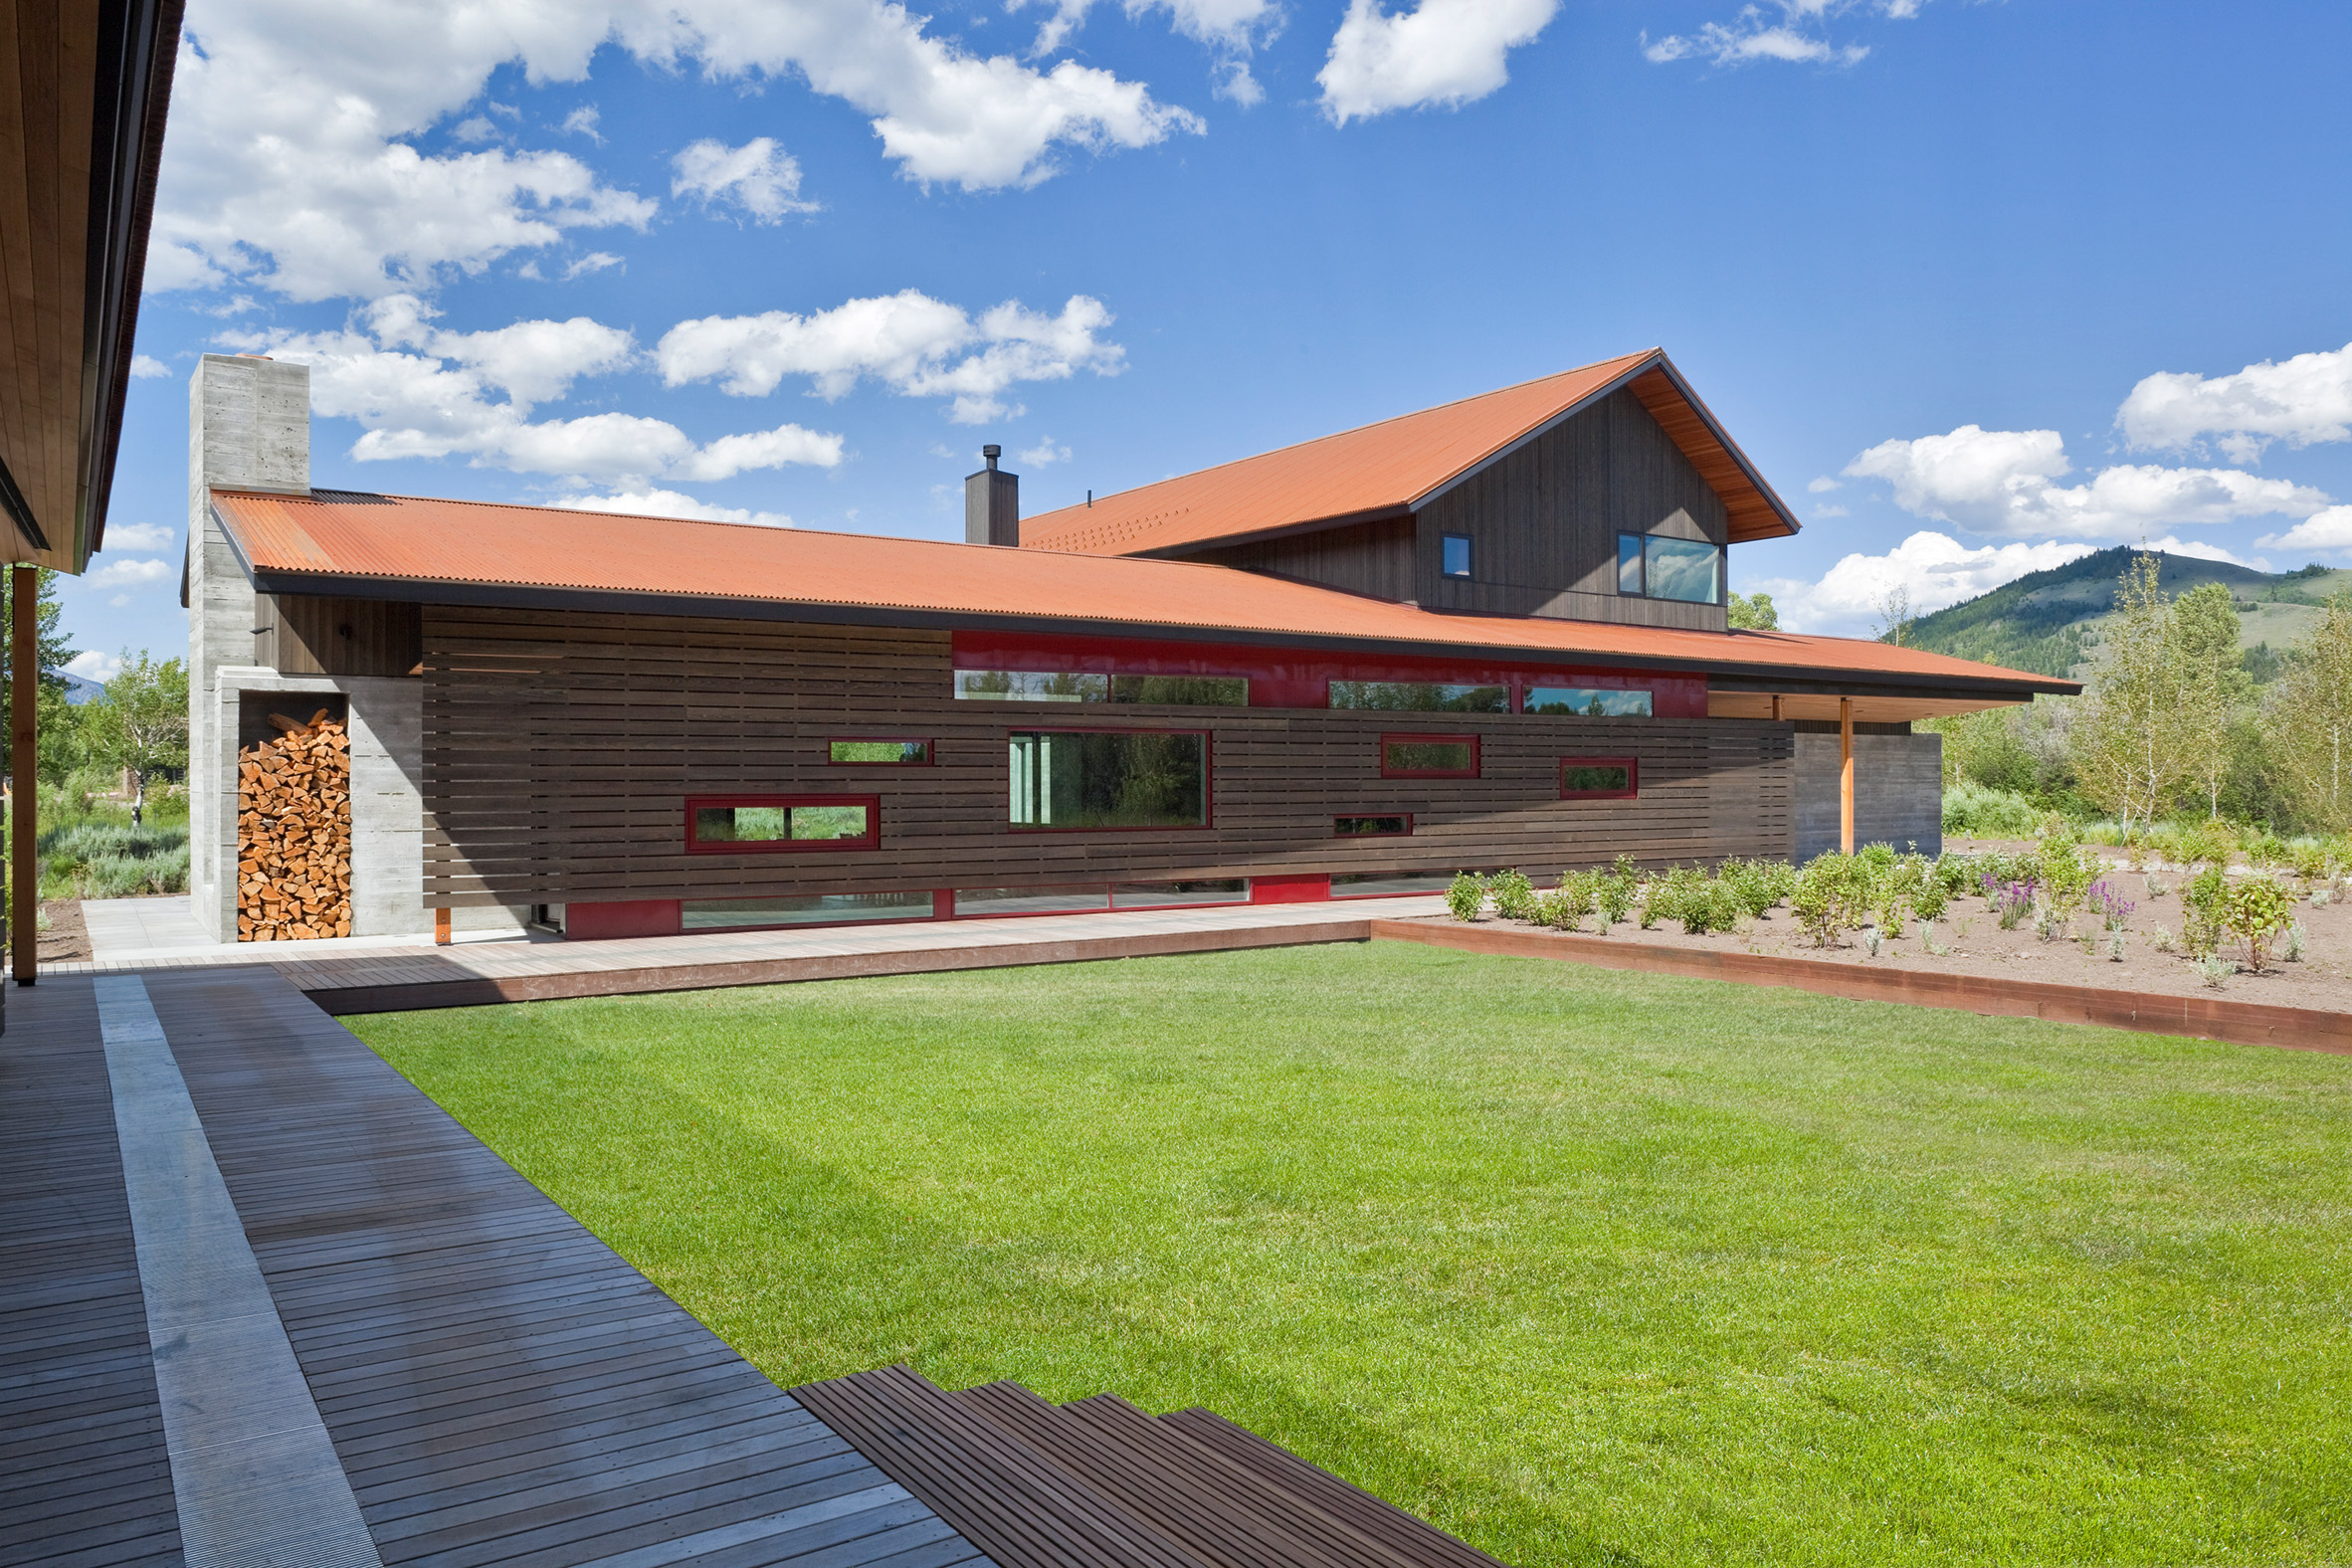 John Dodge house by Dynia faces a Wyoming mountain range